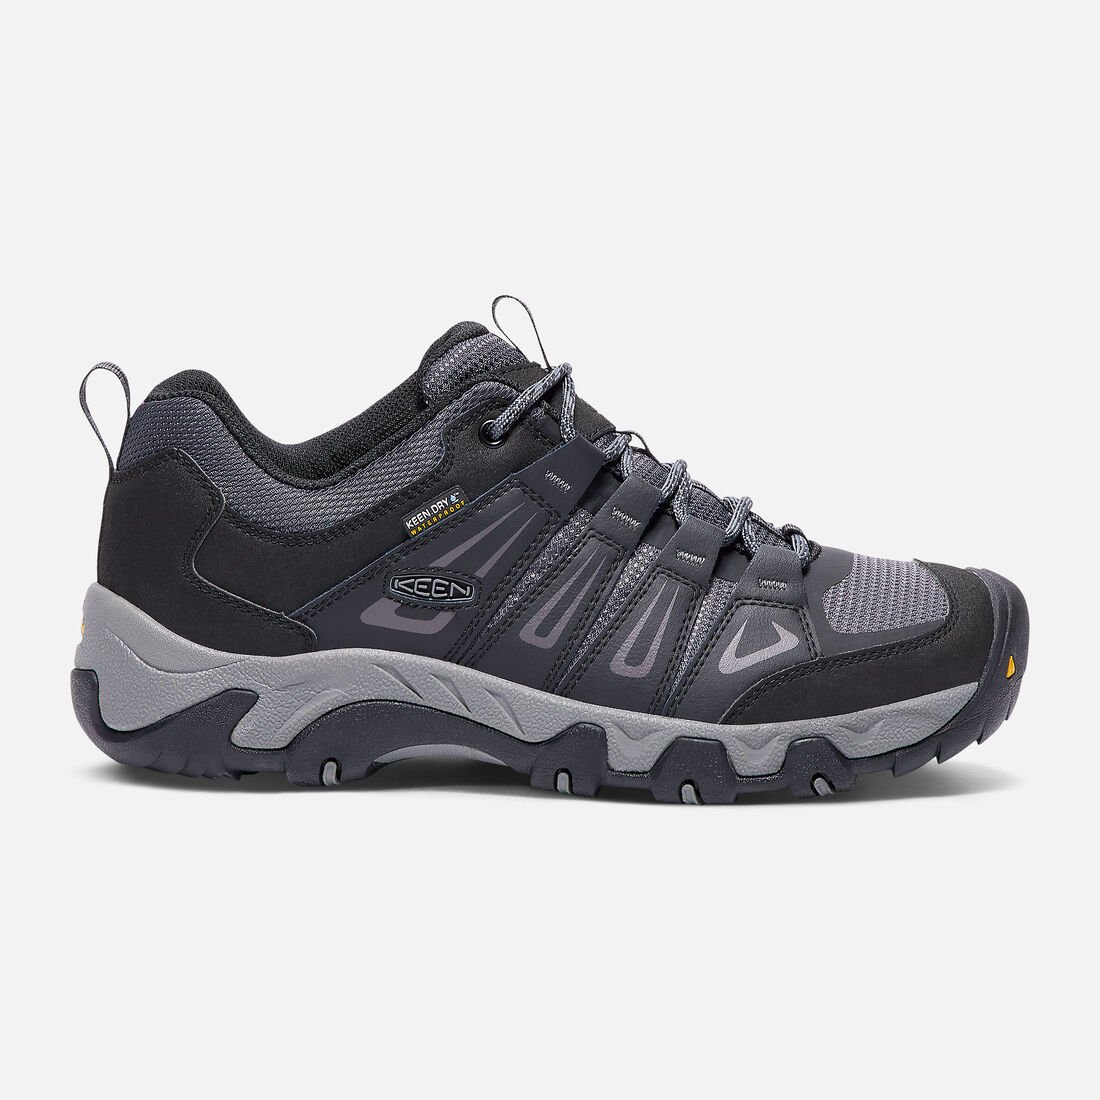 05dd96f4159 MEN'S OAKRIDGE WATERPROOF HIKING SHOES | KEEN Footwear